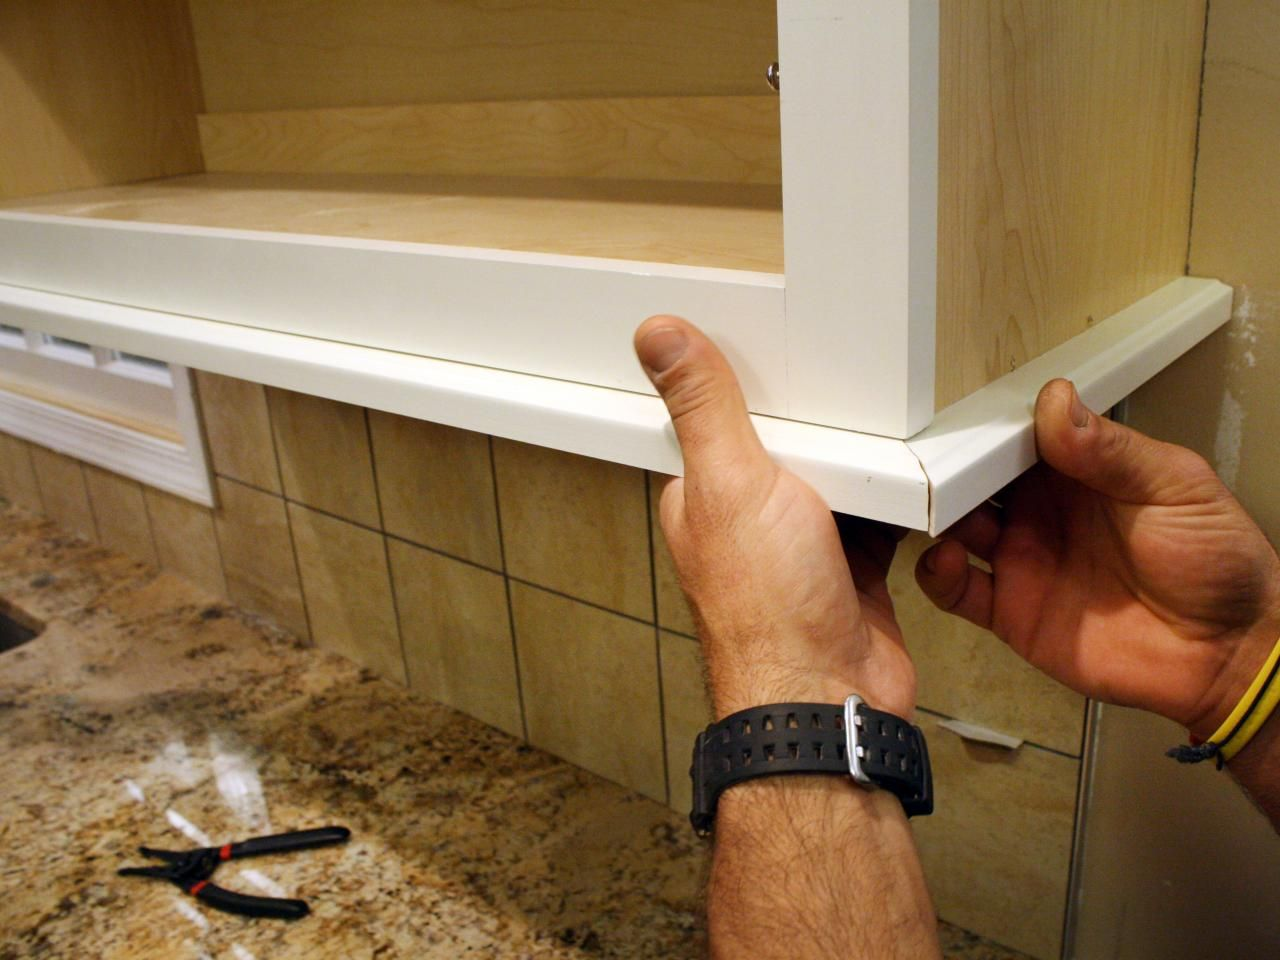 Install A Light Rail To Your Kitchen Cabinets To Hide Under Cabinet Lighting  With These Simple Step By Step Instructions From DIY Networku0027s Kitchen ...